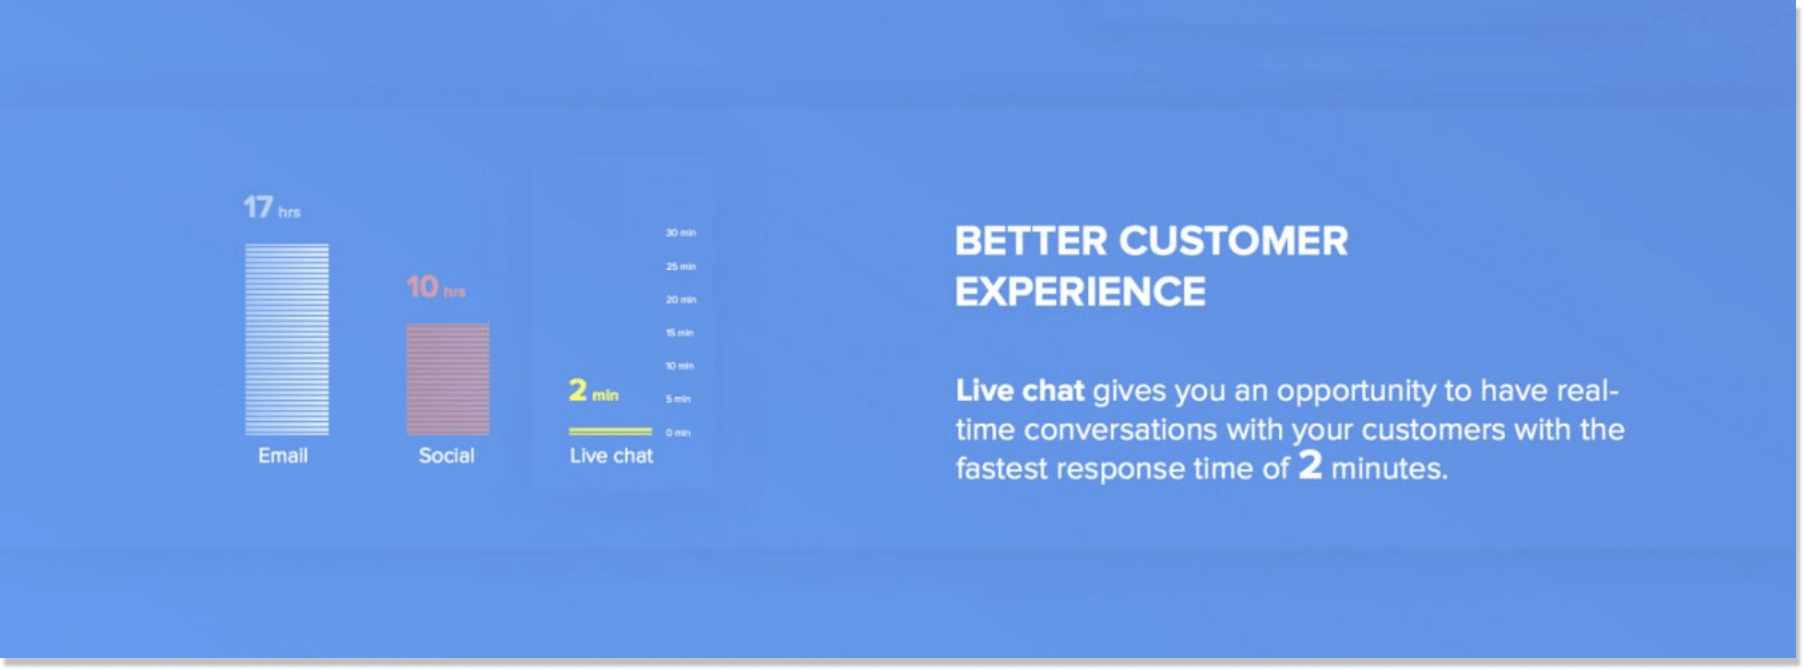 live-chat-infographic